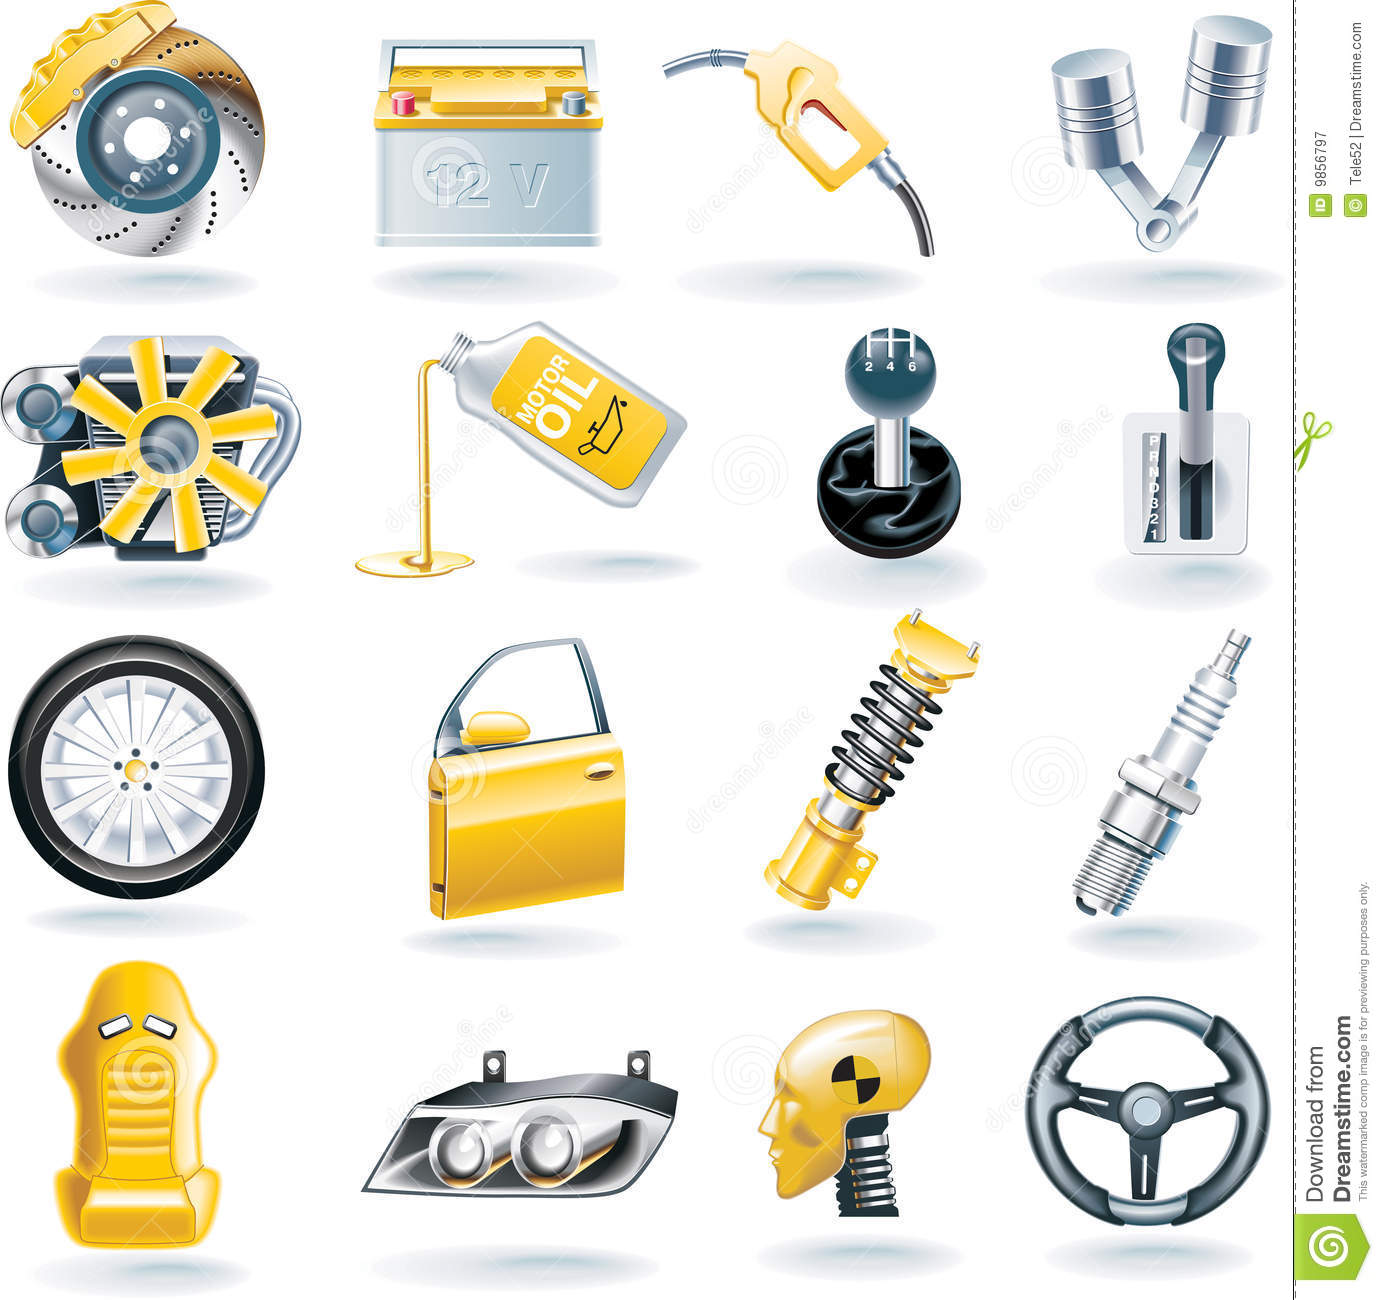 15 Icons Automotive Parts Images